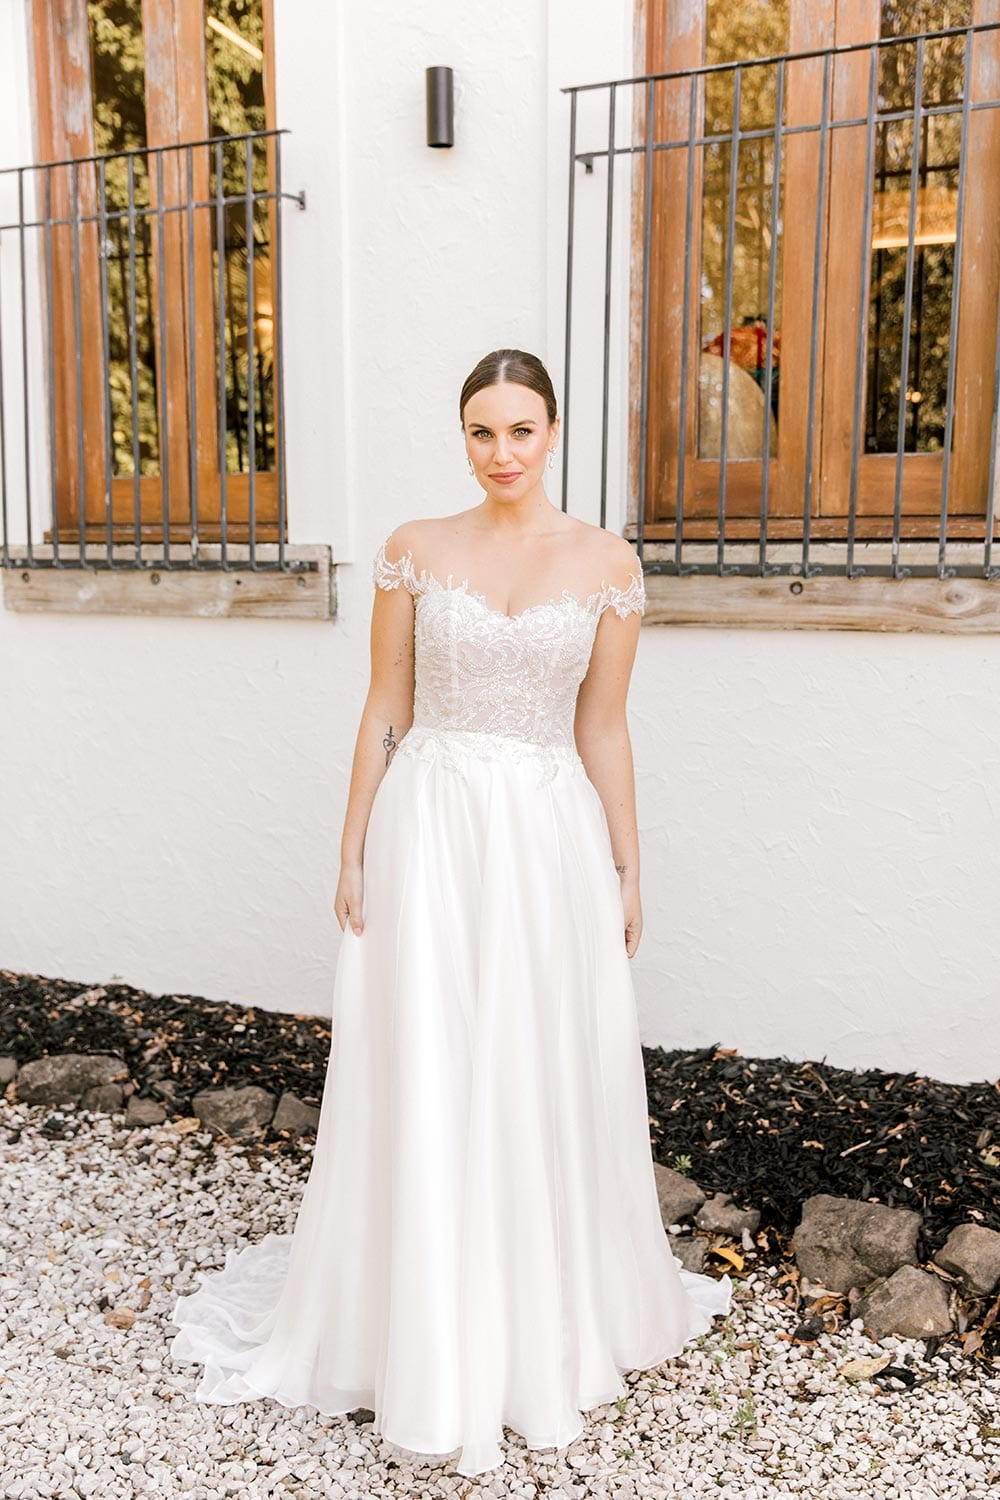 Lena Wedding Dress from Vinka Design. Gorgeous wedding dress with fitted bodice & dreamy silk chiffon & tulle skirt. Off-shoulder detail with an illusion neckline made with fine Italian tulle & lace detail. Full length front of dress. Photographed in front of beautiful old building.